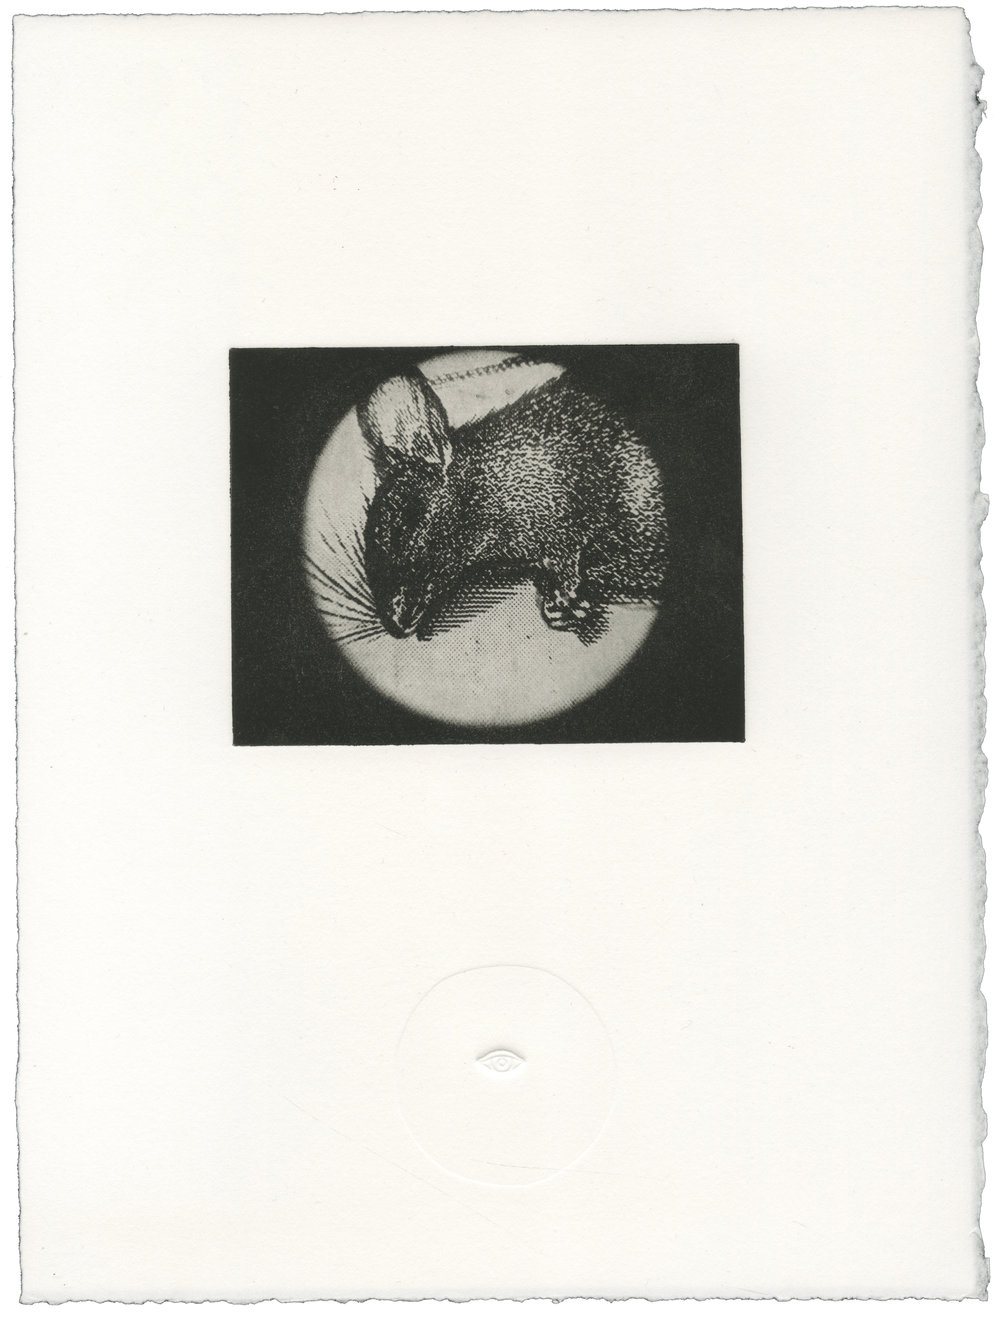 On The Floor , Polymer Intaglio with Blind Emboss, 11x14 inches, 2014